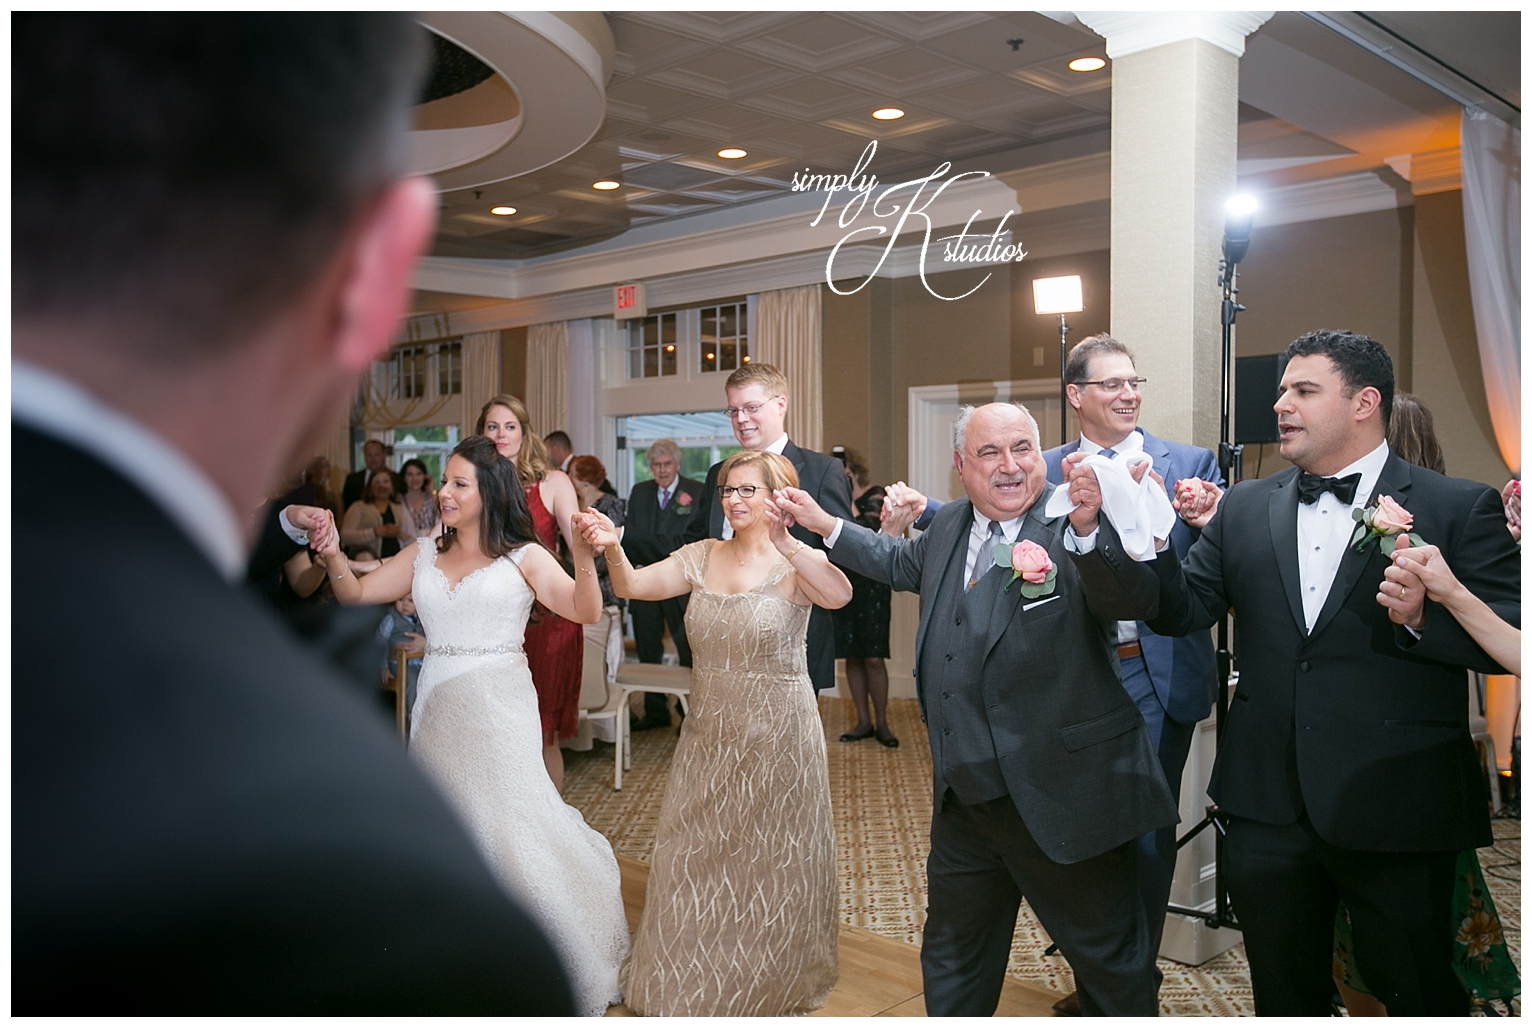 Greek Dancing at a Wedding.jpg